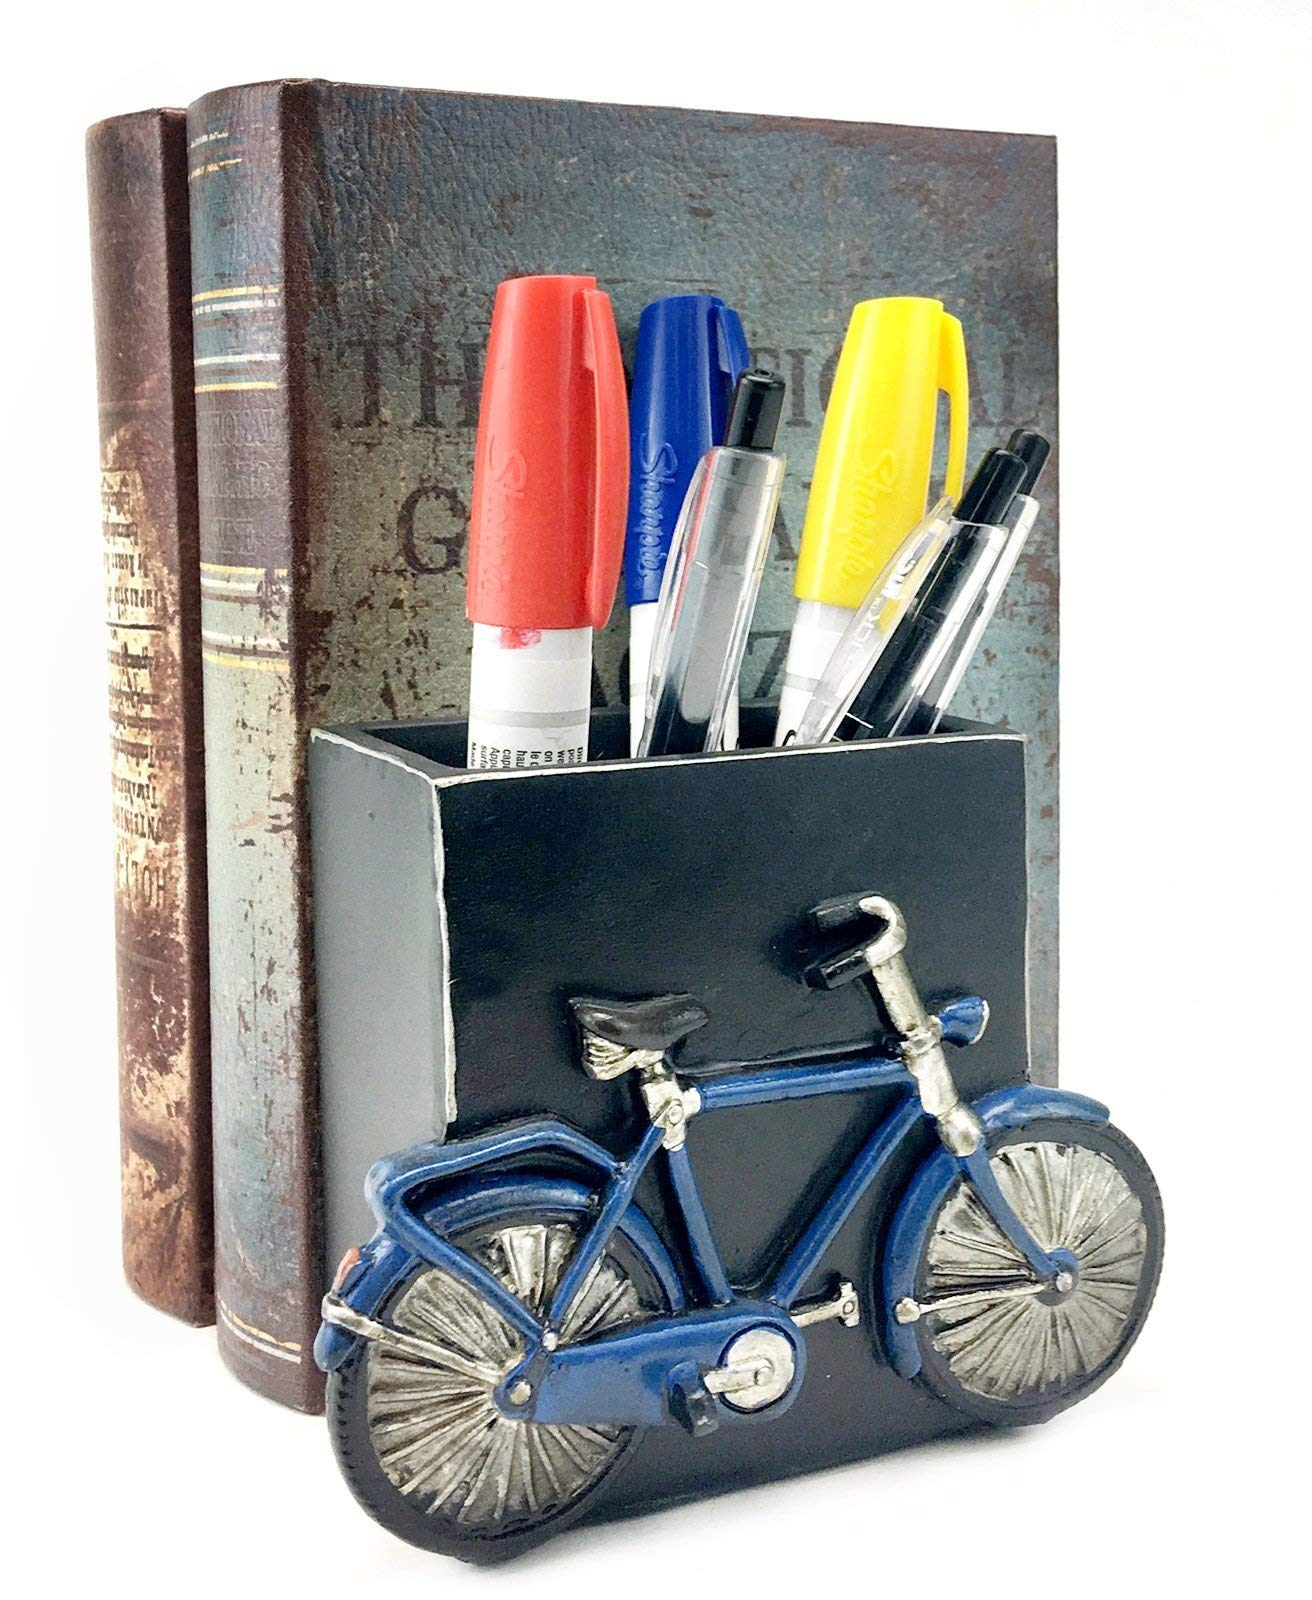 Bellaa 21420 Bicycle Pencils Holder Bookends Pen Organizer 4 inch by Bellaa